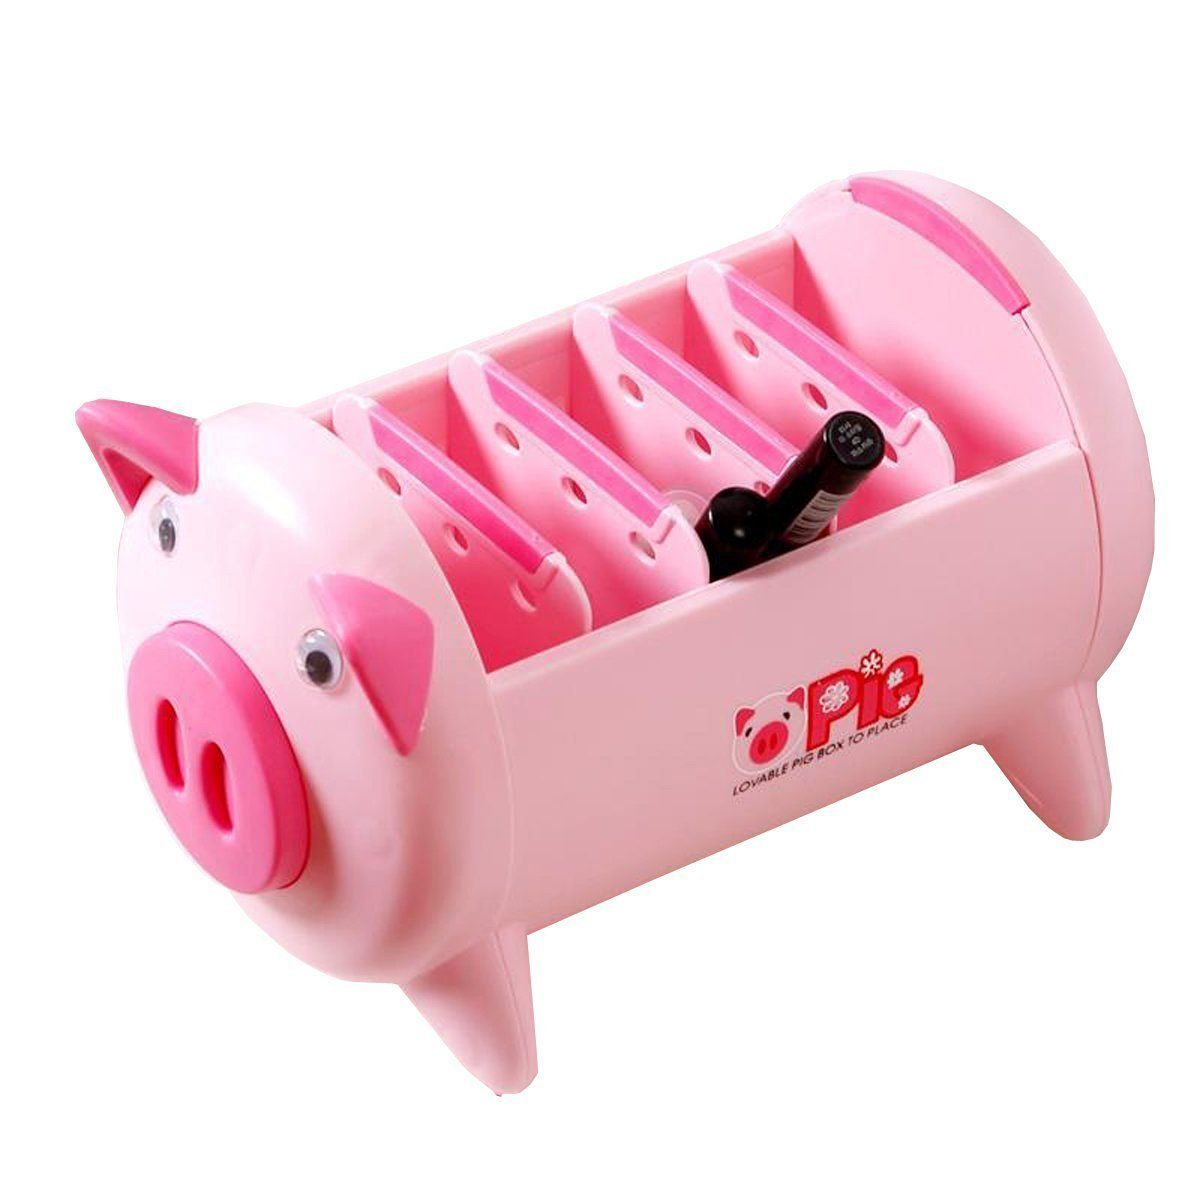 Creative Pigs Plastic Office Pencil Holder Best Offer | Reviews